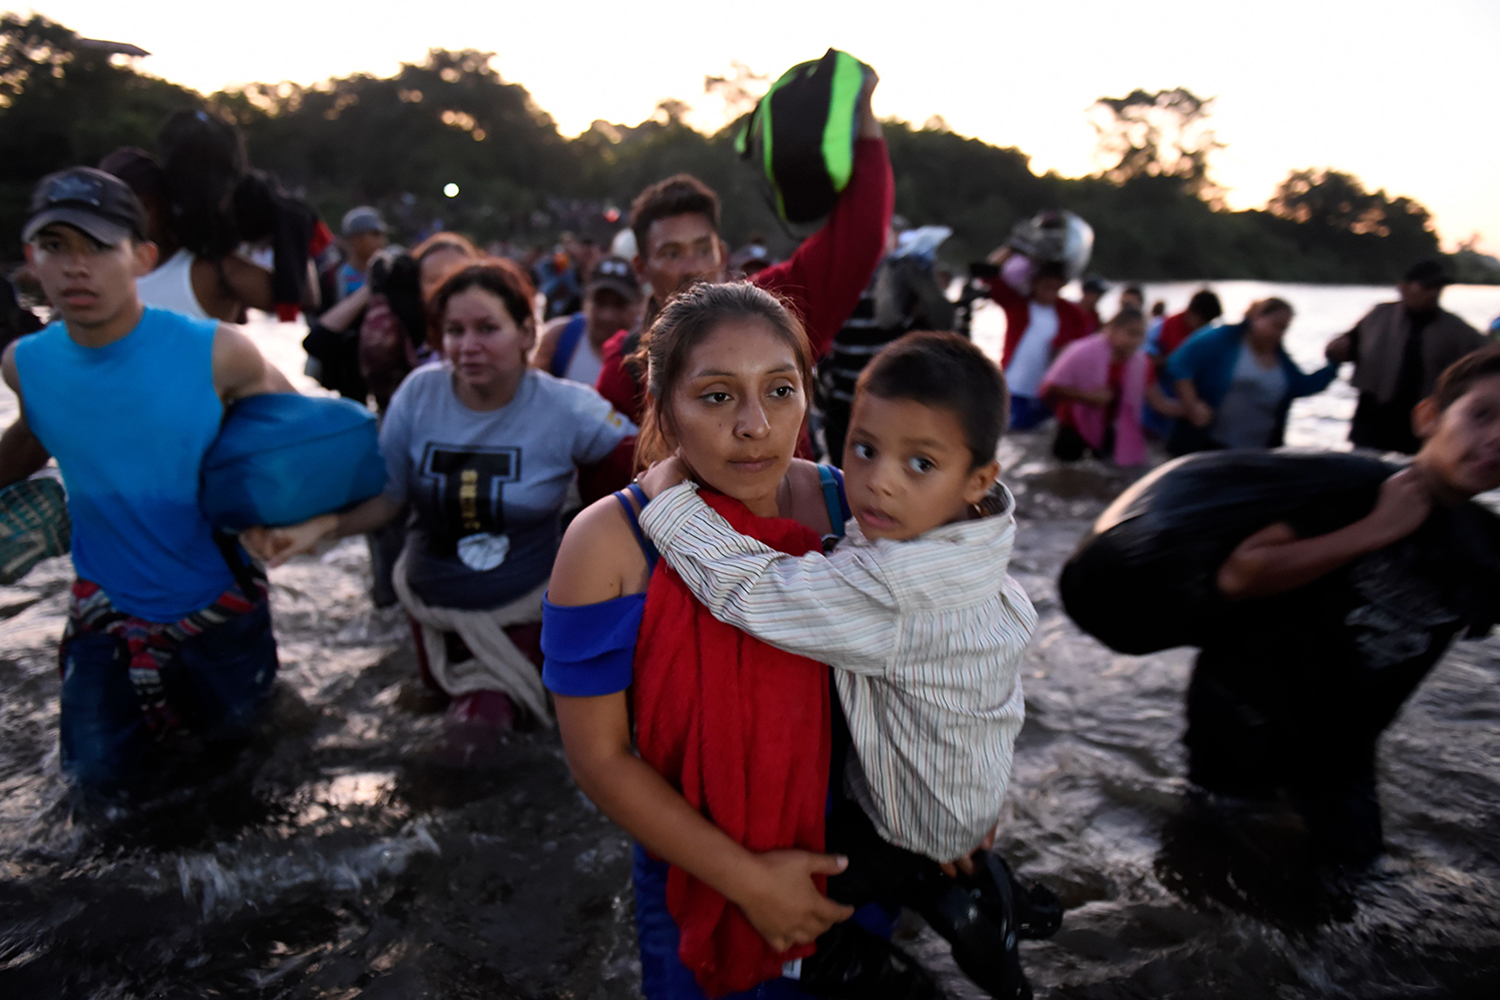 Central American migrants—mostly Hondurans—cross the Suchiate River from Tecun Uman, Guatemala, to Ciudad Hidalgo, Mexico, on their way to the United States on Jan. 23. ALFREDO ESTRELLA/AFP via Getty Images